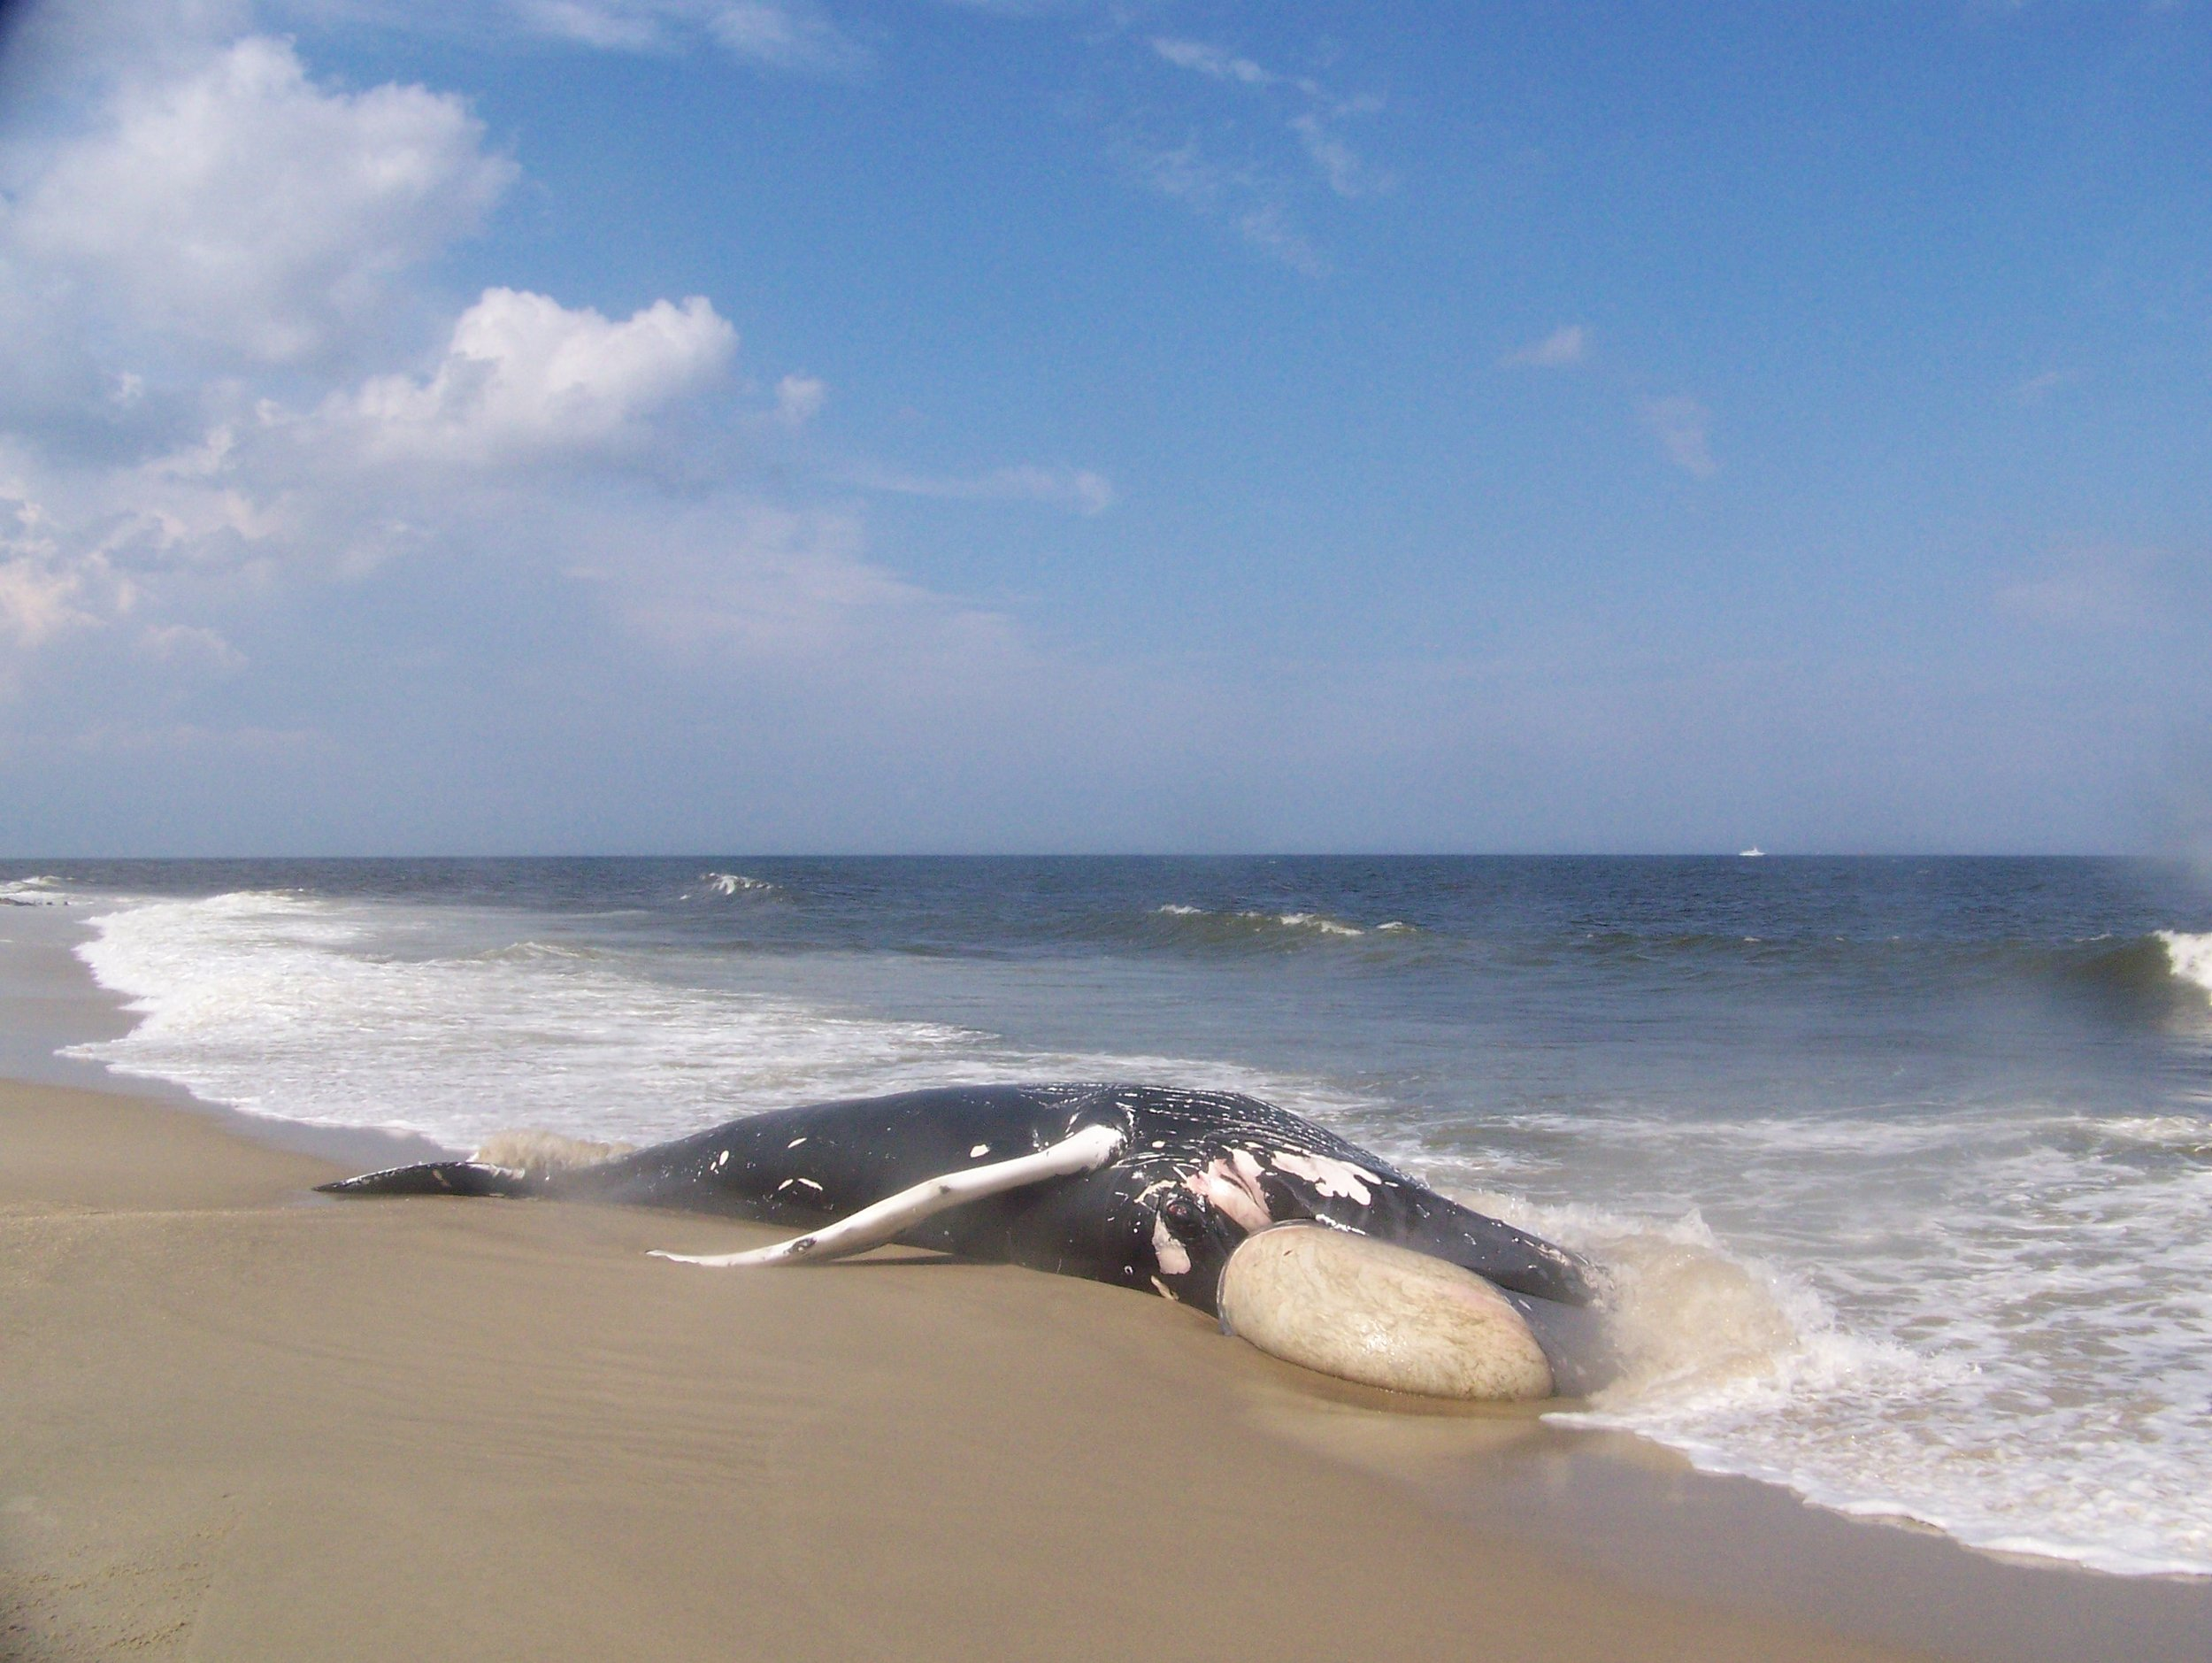 Save the Whales - Along the Jersey Shore